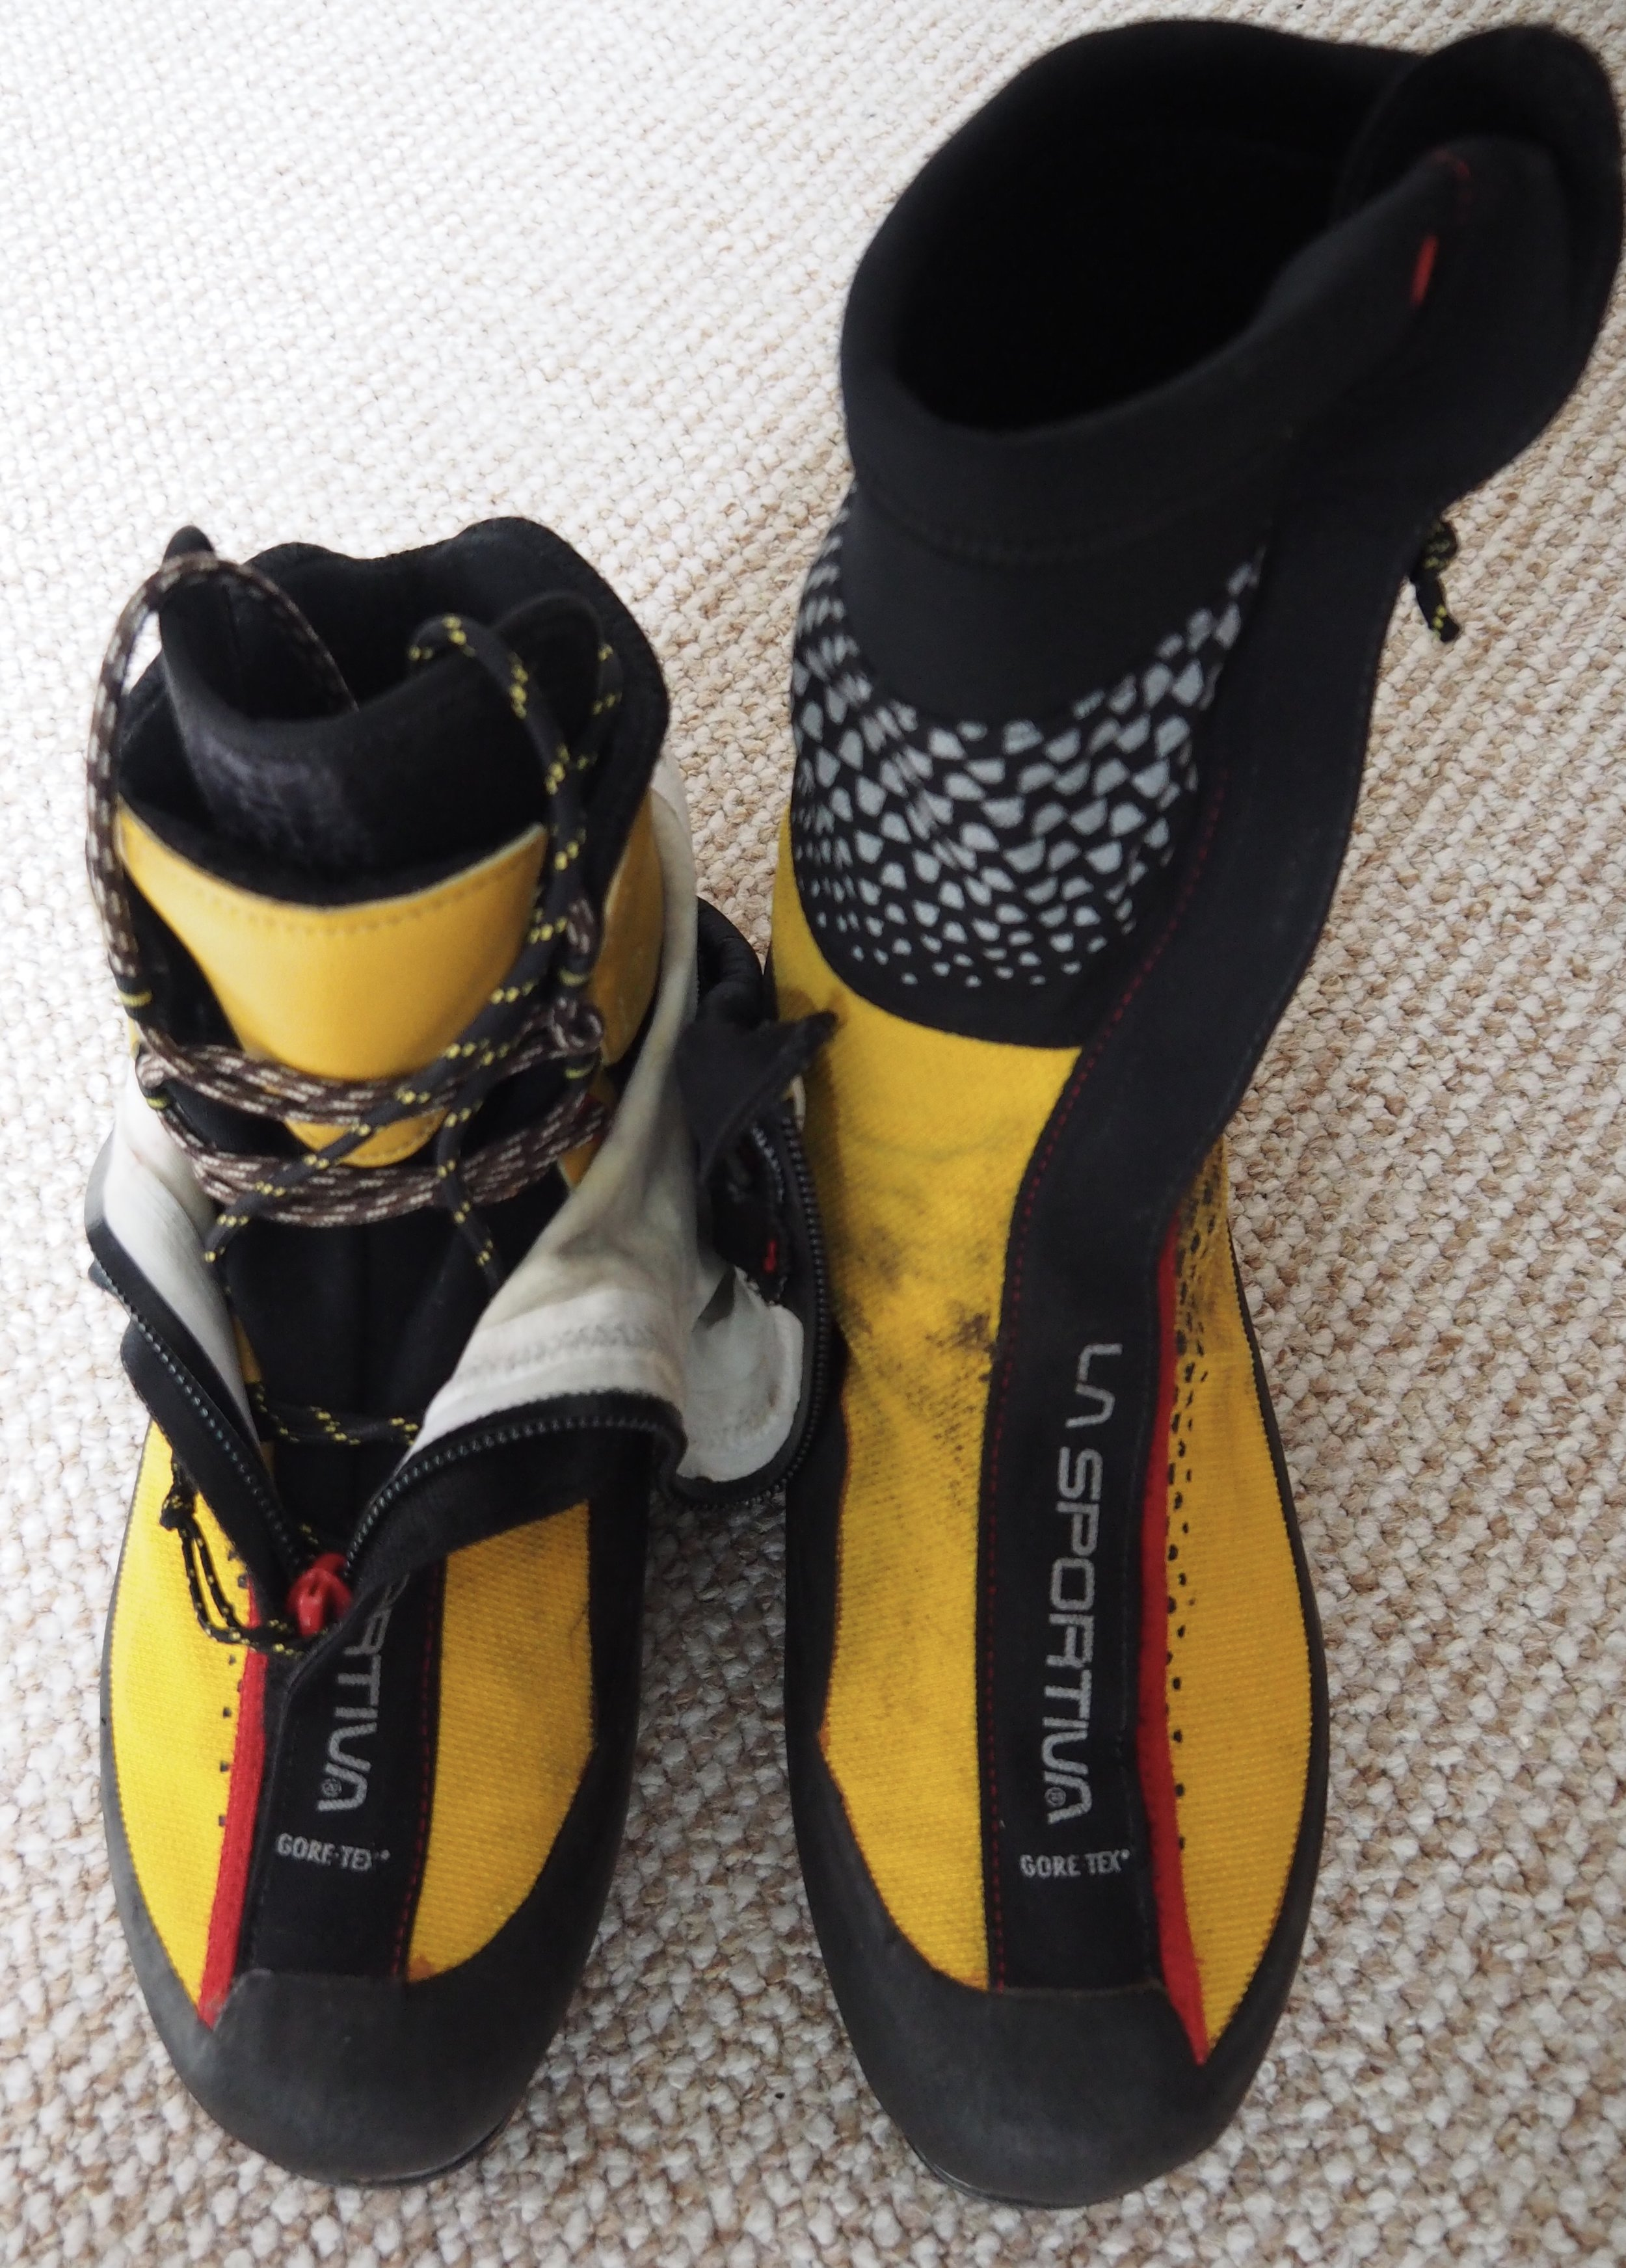 Super Gaiter Boots keep your feet super warm and dry.